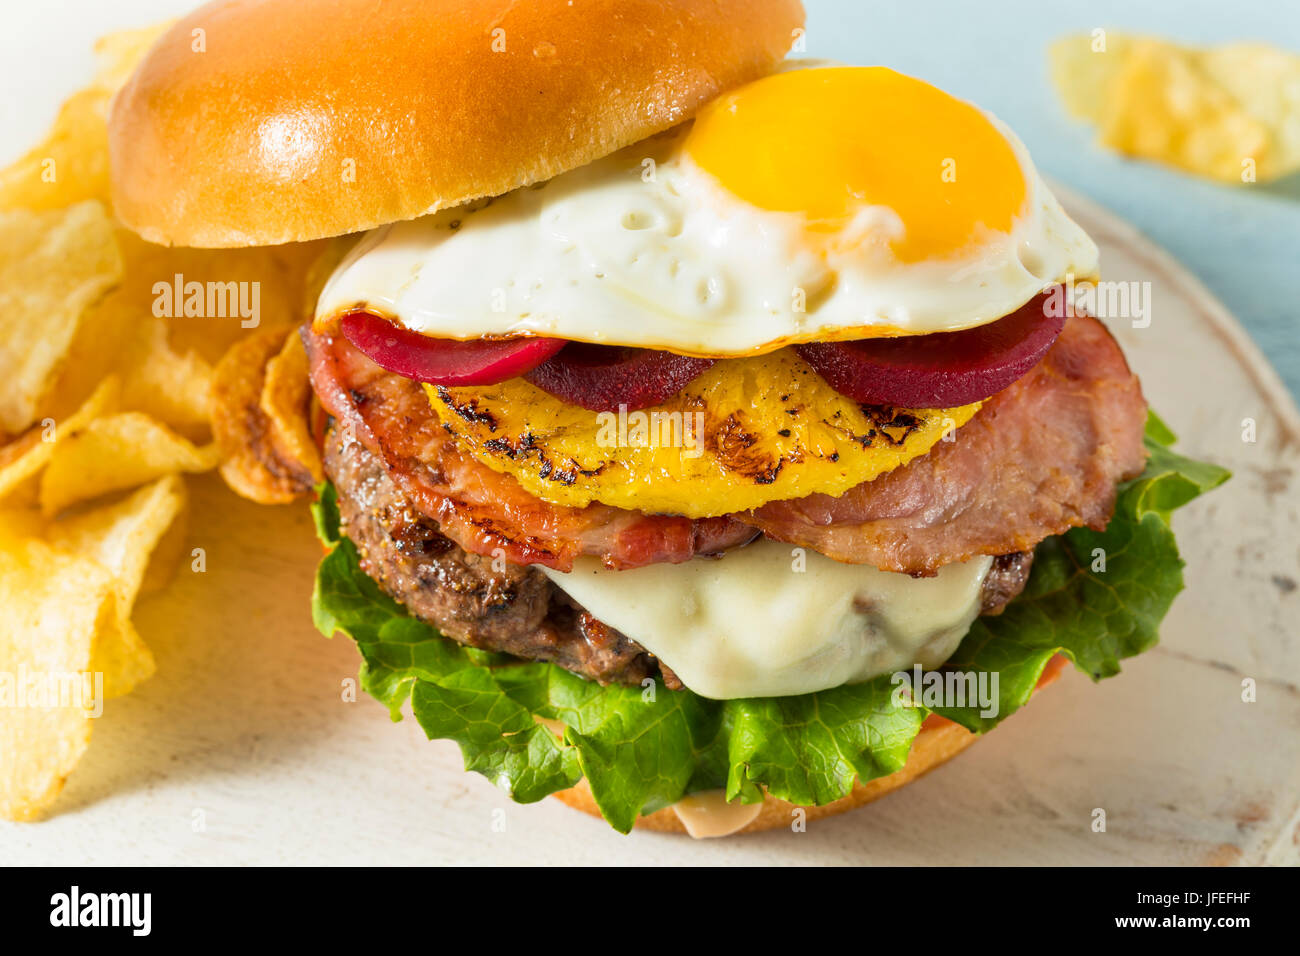 Homemade Aussie Pineapple and Beet Cheeseburger with Egg and Bacon - Stock Image